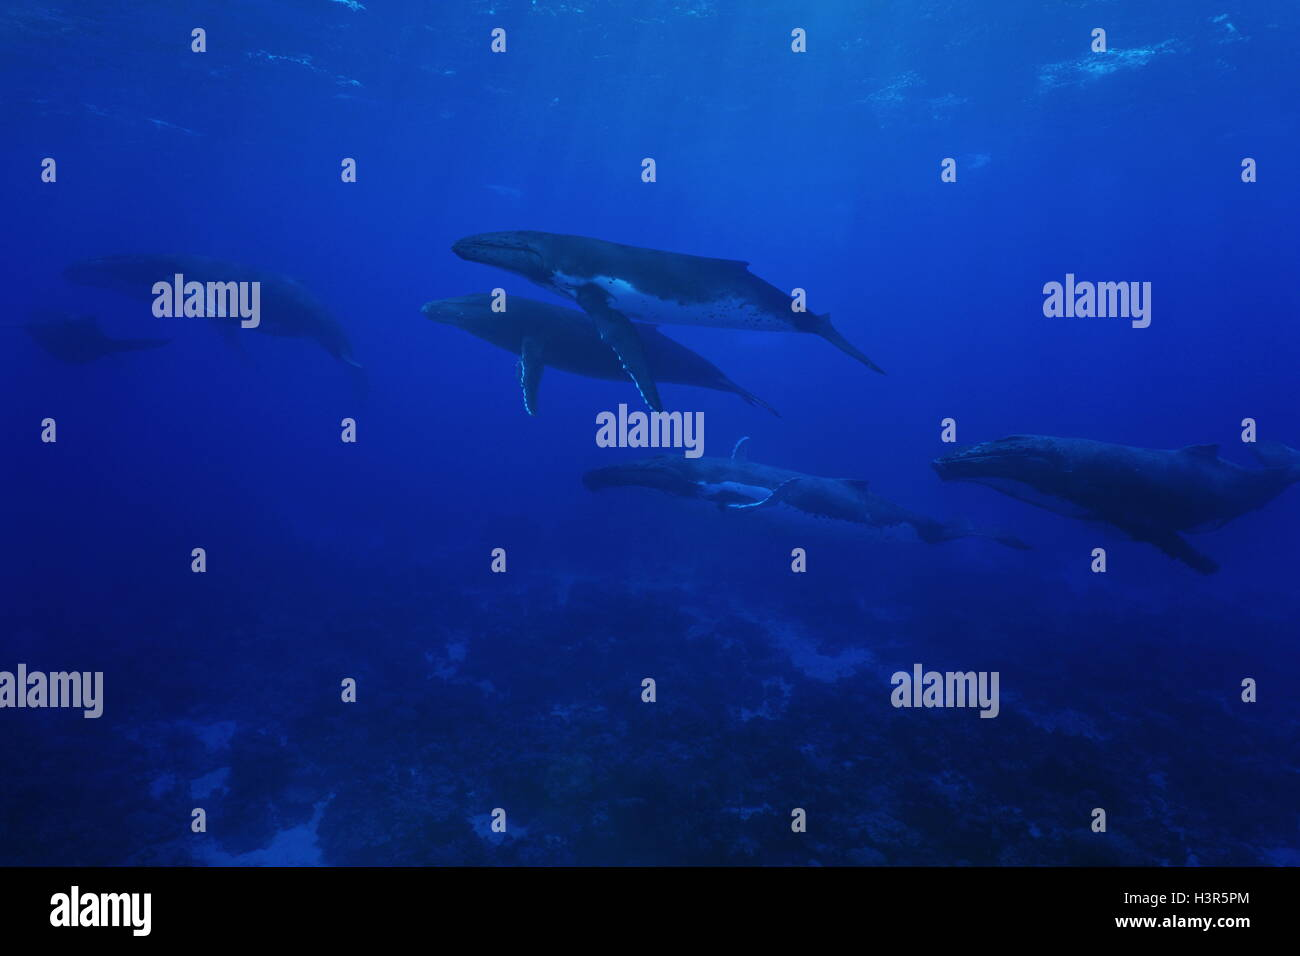 Group of humpback whales, Megaptera novaeangliae, underwater in the Pacific ocean, Rurutu island, Austral French - Stock Image